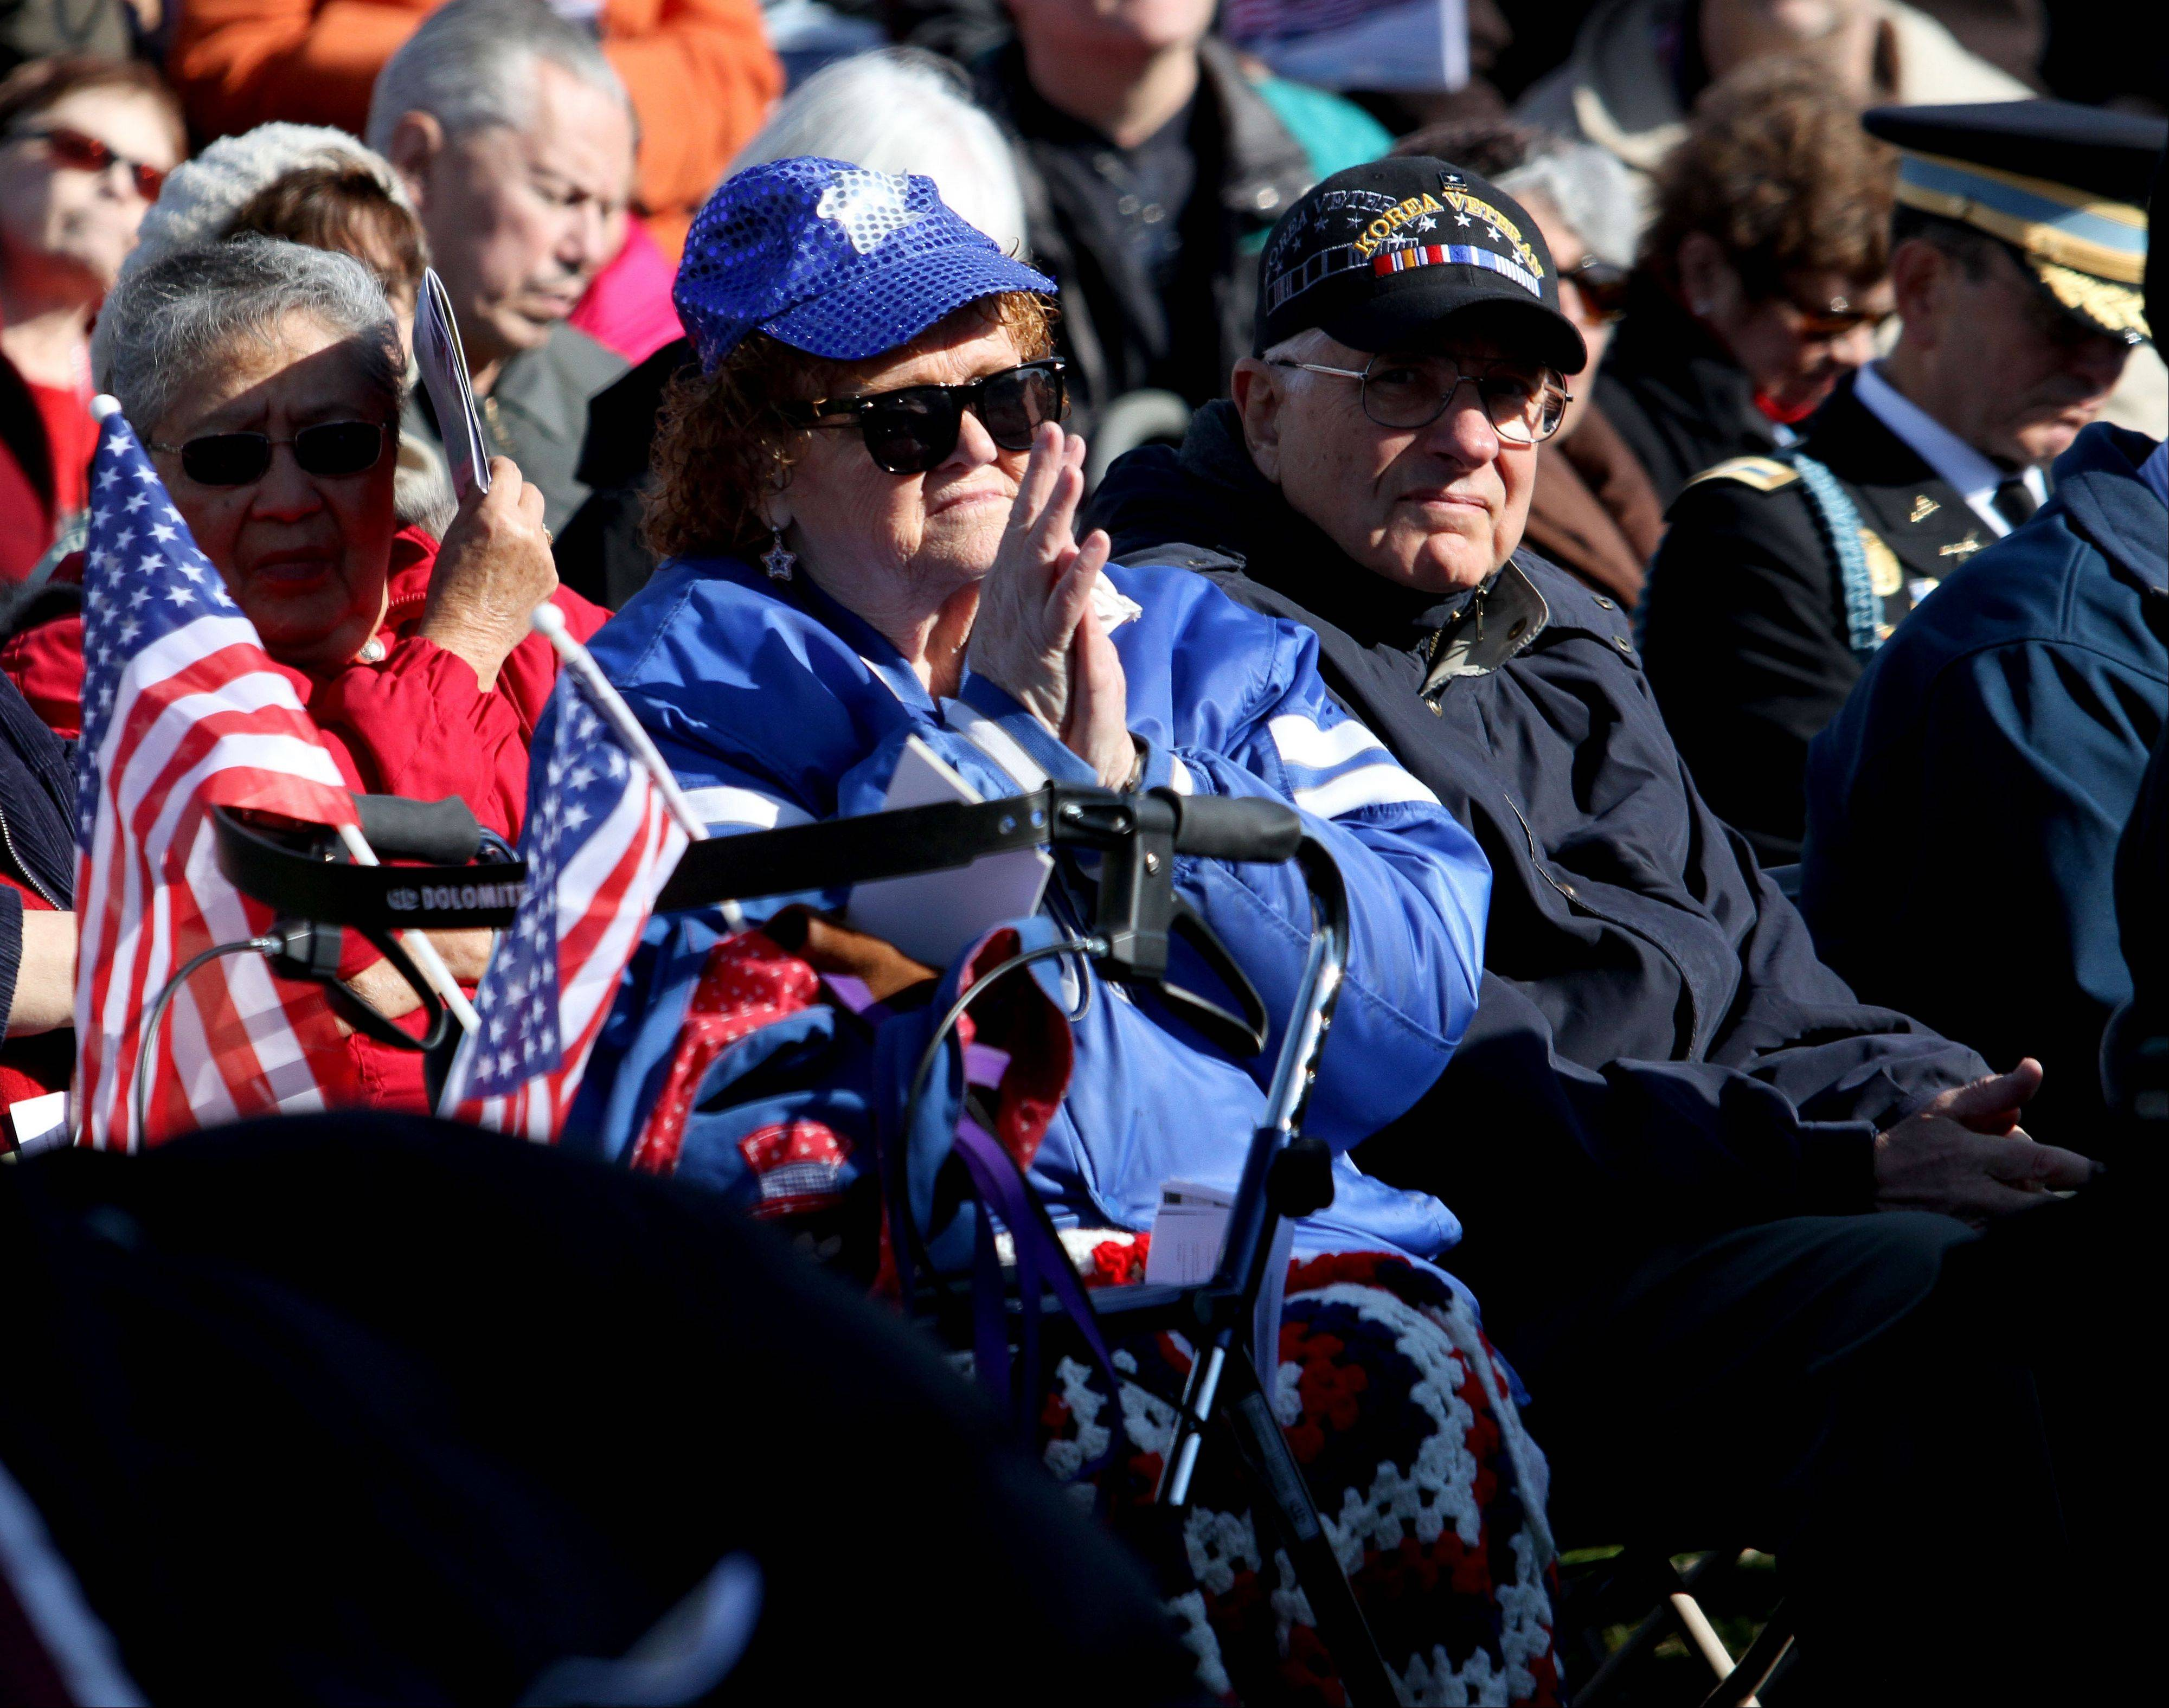 Judith Brown, who served in the Air Force from 1957 to 1960, said she wept through Friday's entire program.